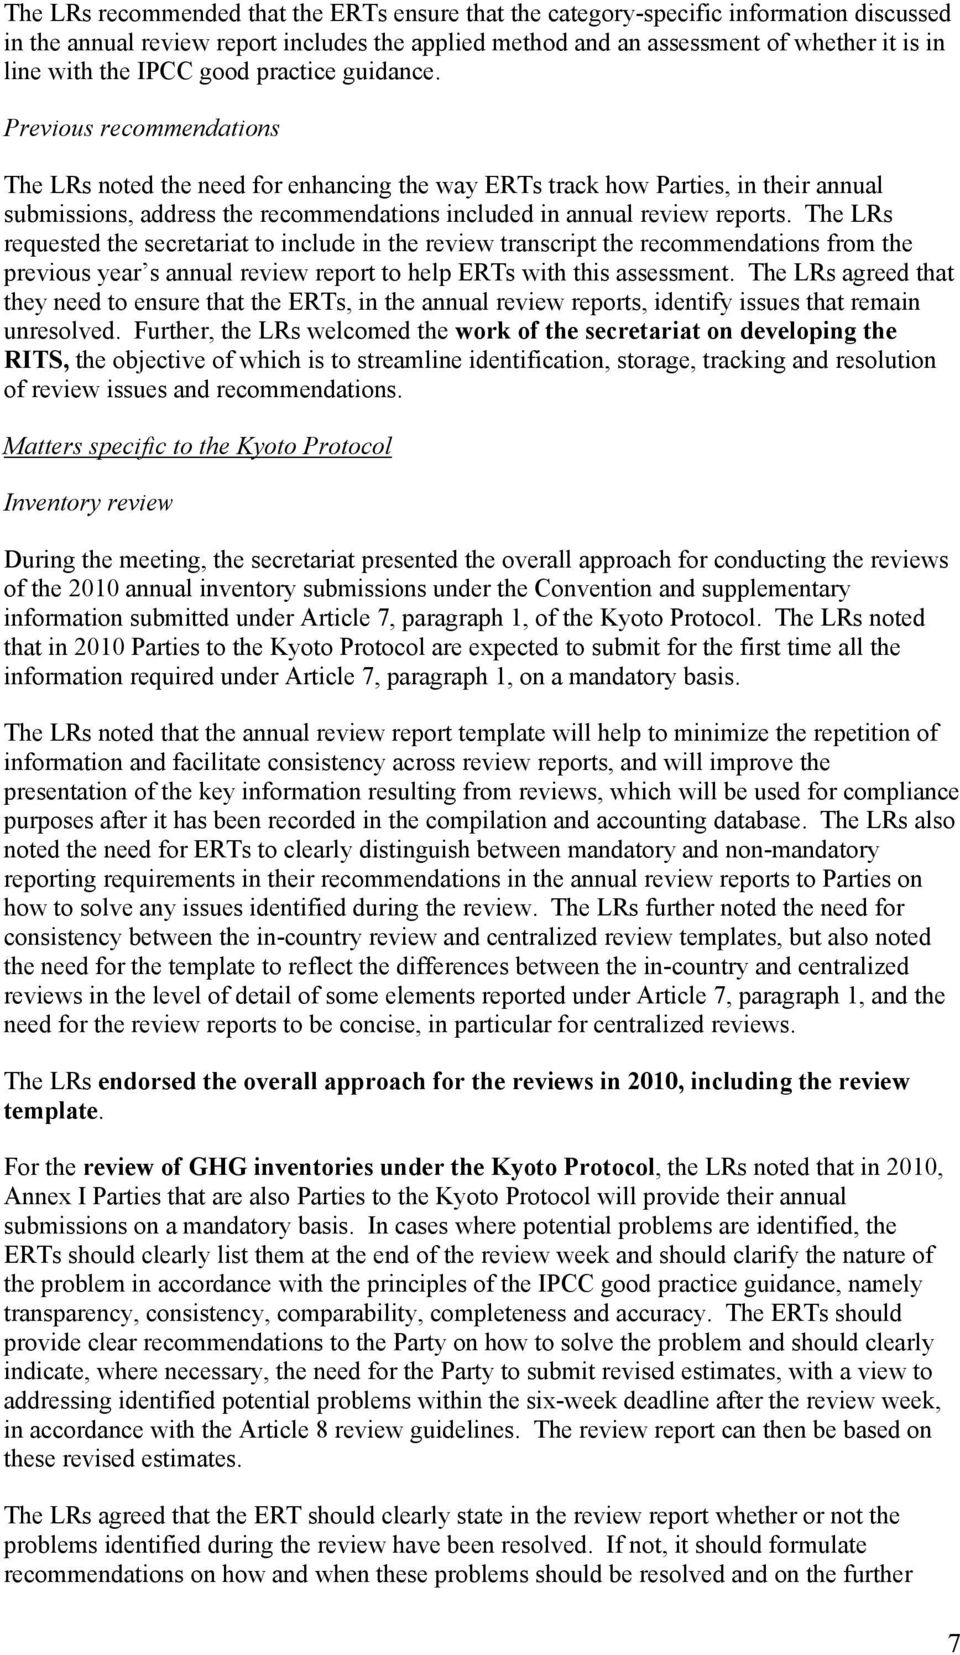 Previous recommendations The LRs noted the need for enhancing the way ERTs track how Parties, in their annual submissions, address the recommendations included in annual review reports.